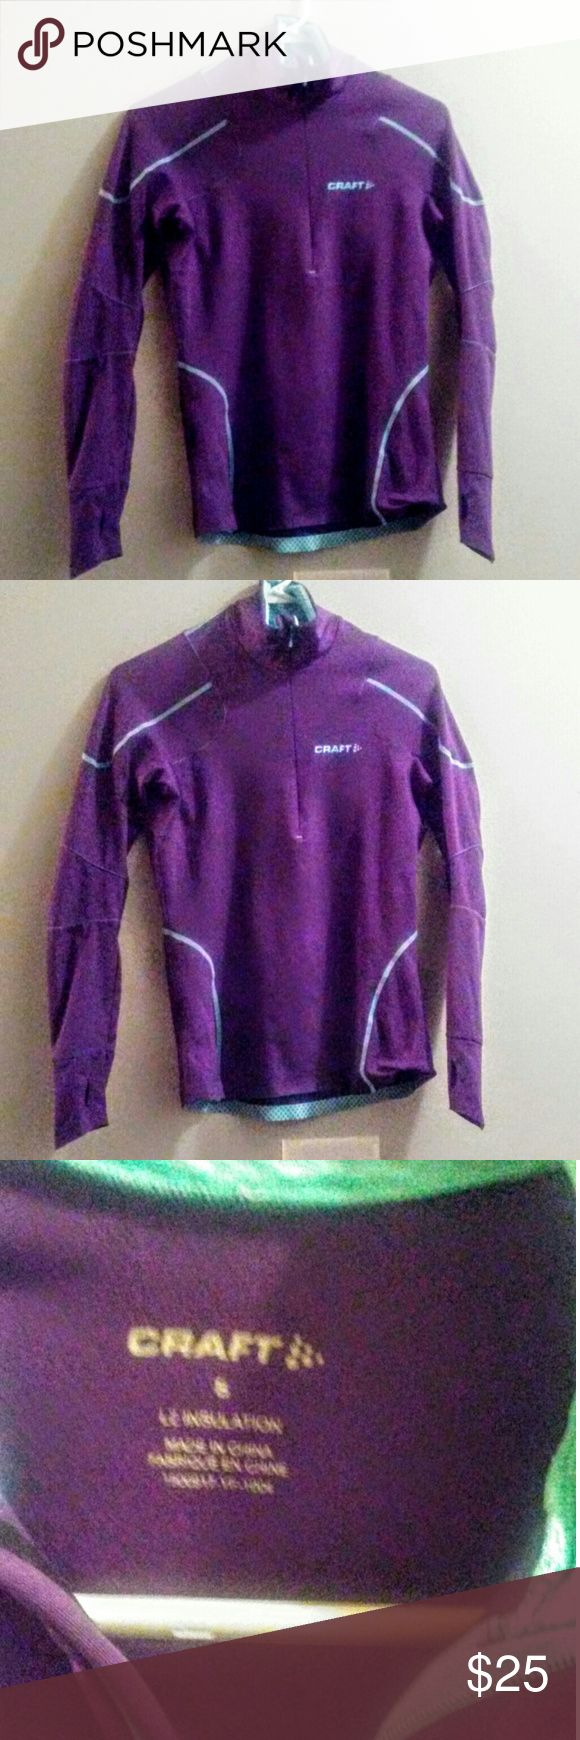 Craft athletic performance quarter zip Purple and teal blue a athletic performance quarter zip long sleeved shirt size small craft  Tops